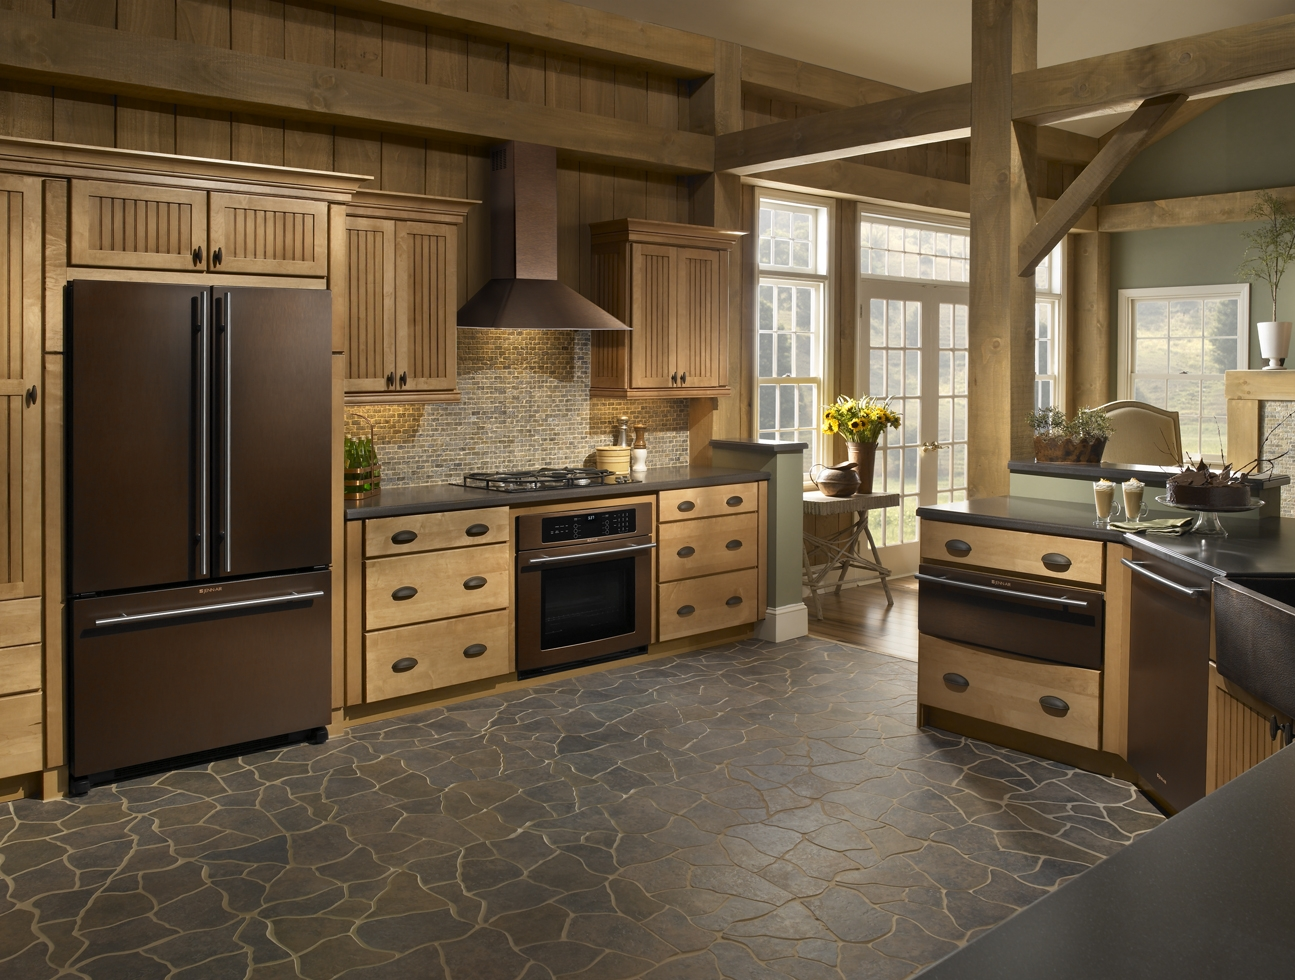 marvelous Oil Rubbed Bronze Appliances Kitchen #1: Jenn-Airu0027s new finish, Oiled Bronze